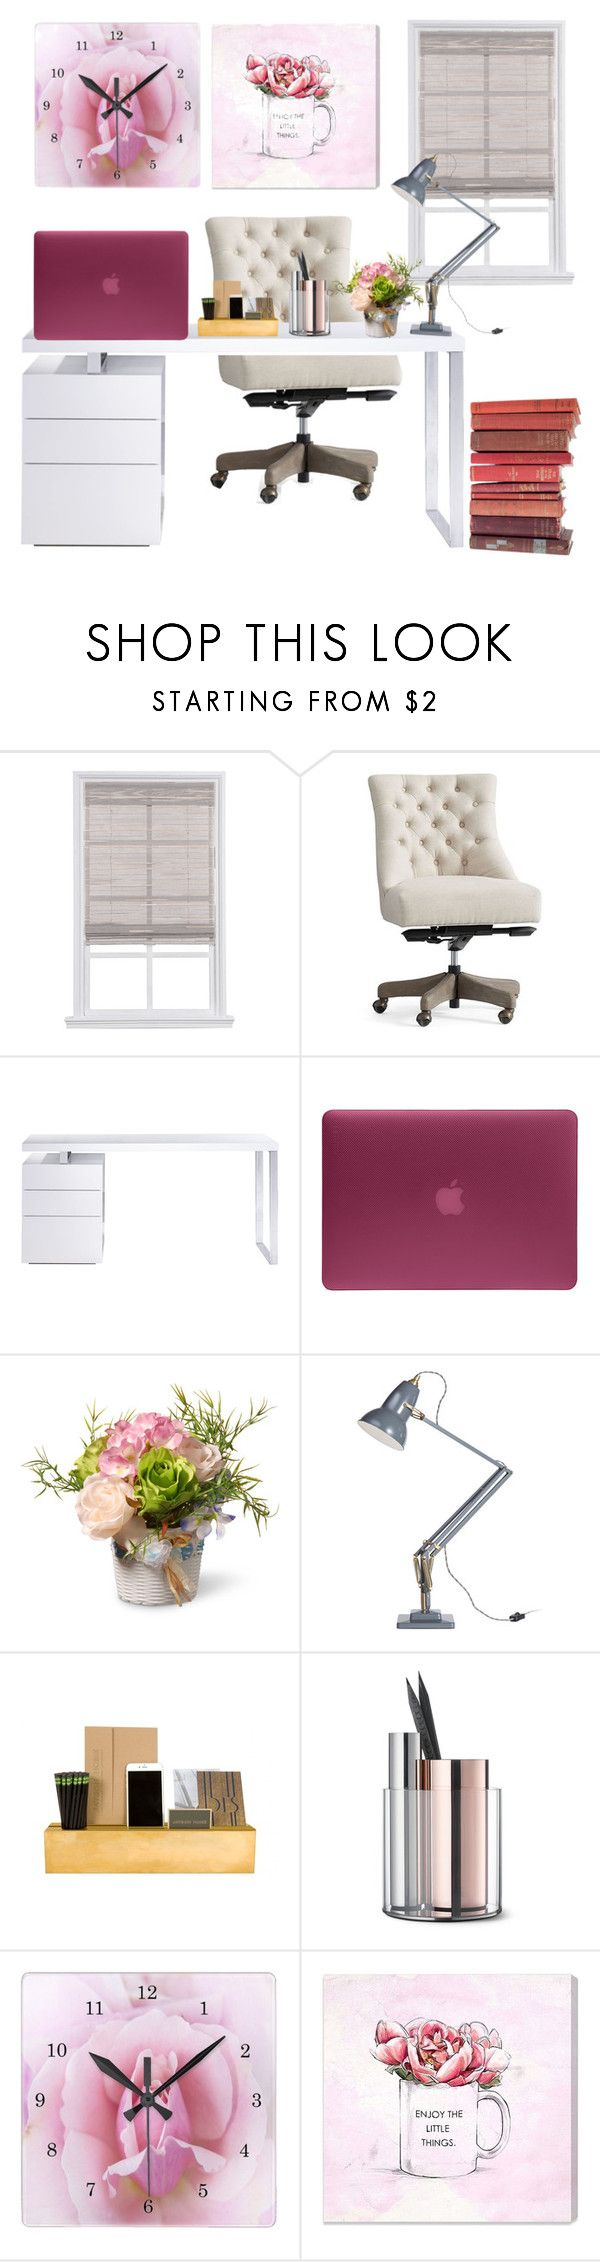 """Pretty desk"" by elisabetta-negro ❤ liked on Polyvore featuring interior, interiors, interior design, home, home decor, interior decorating, Pottery Barn, Bellini, Incase and National Tree Company"